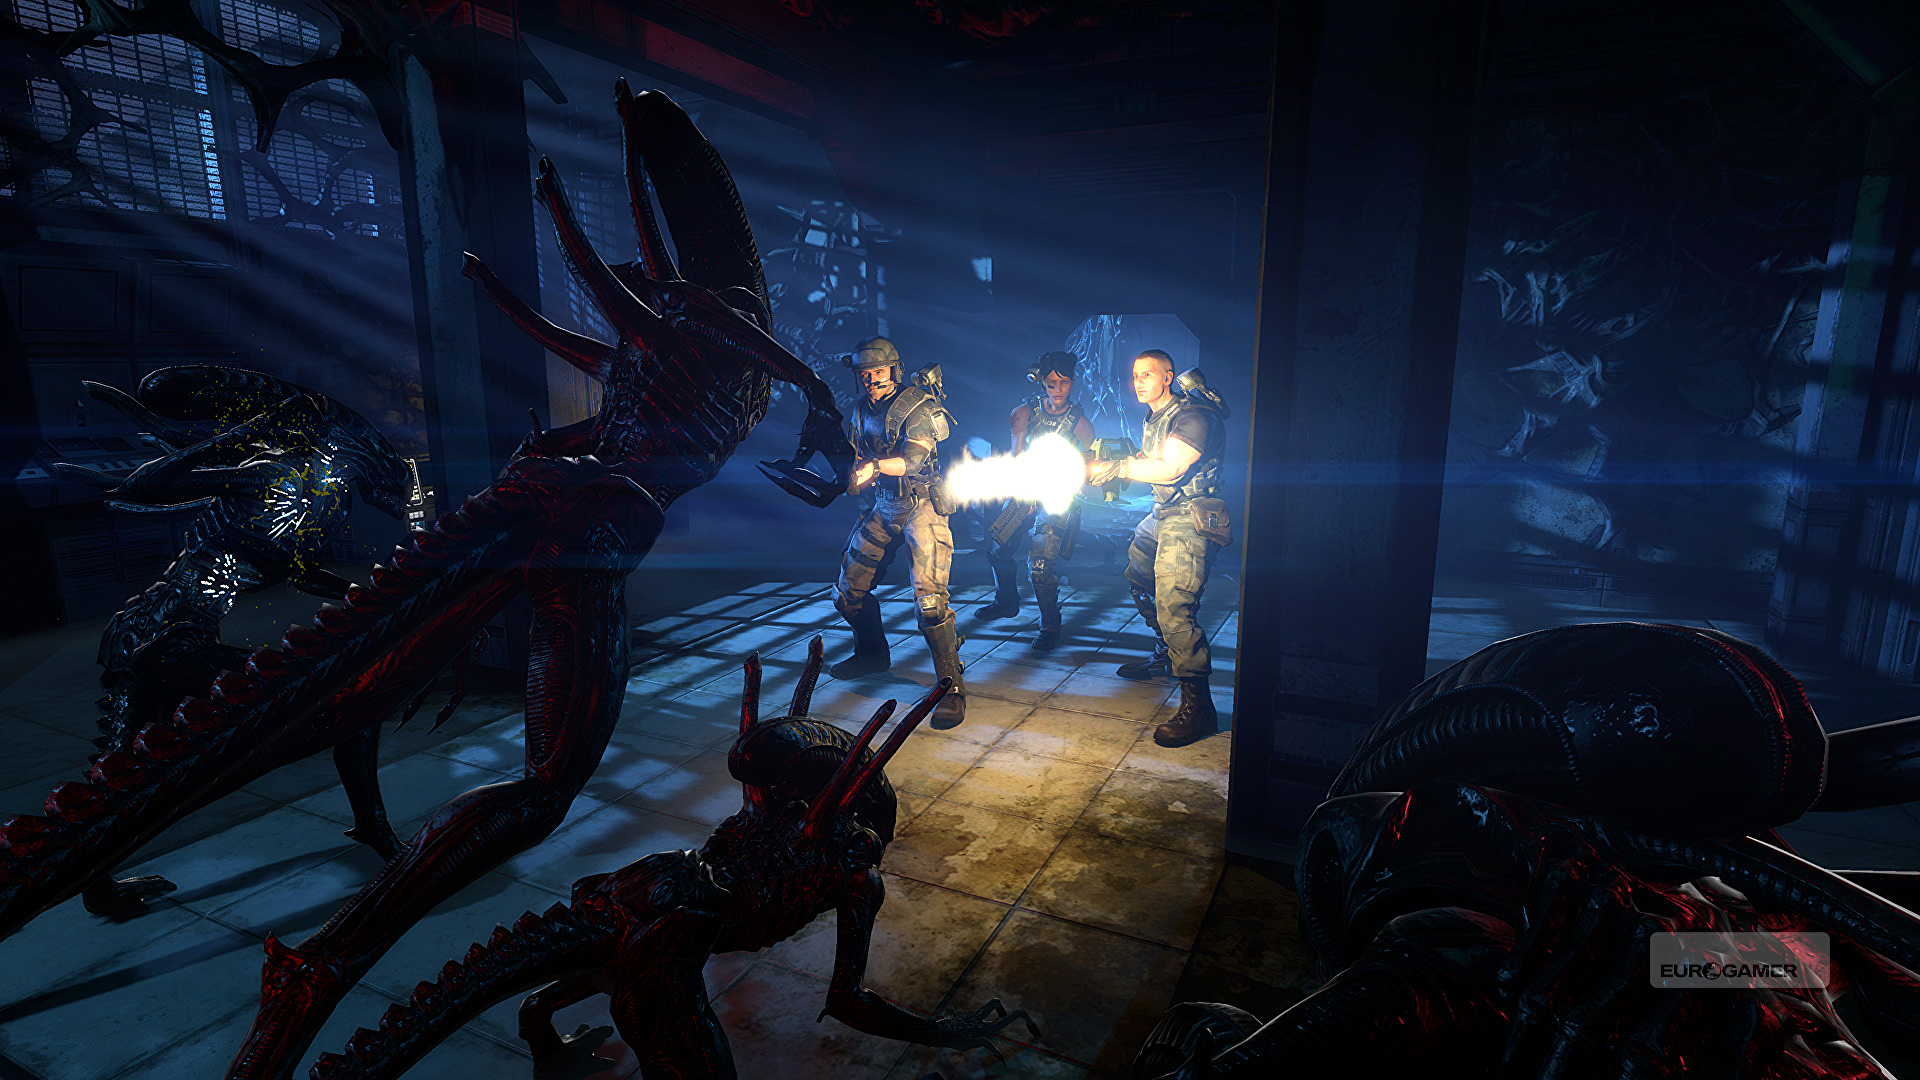 Download Torrent Aliens Colonial Marines Pc Patch